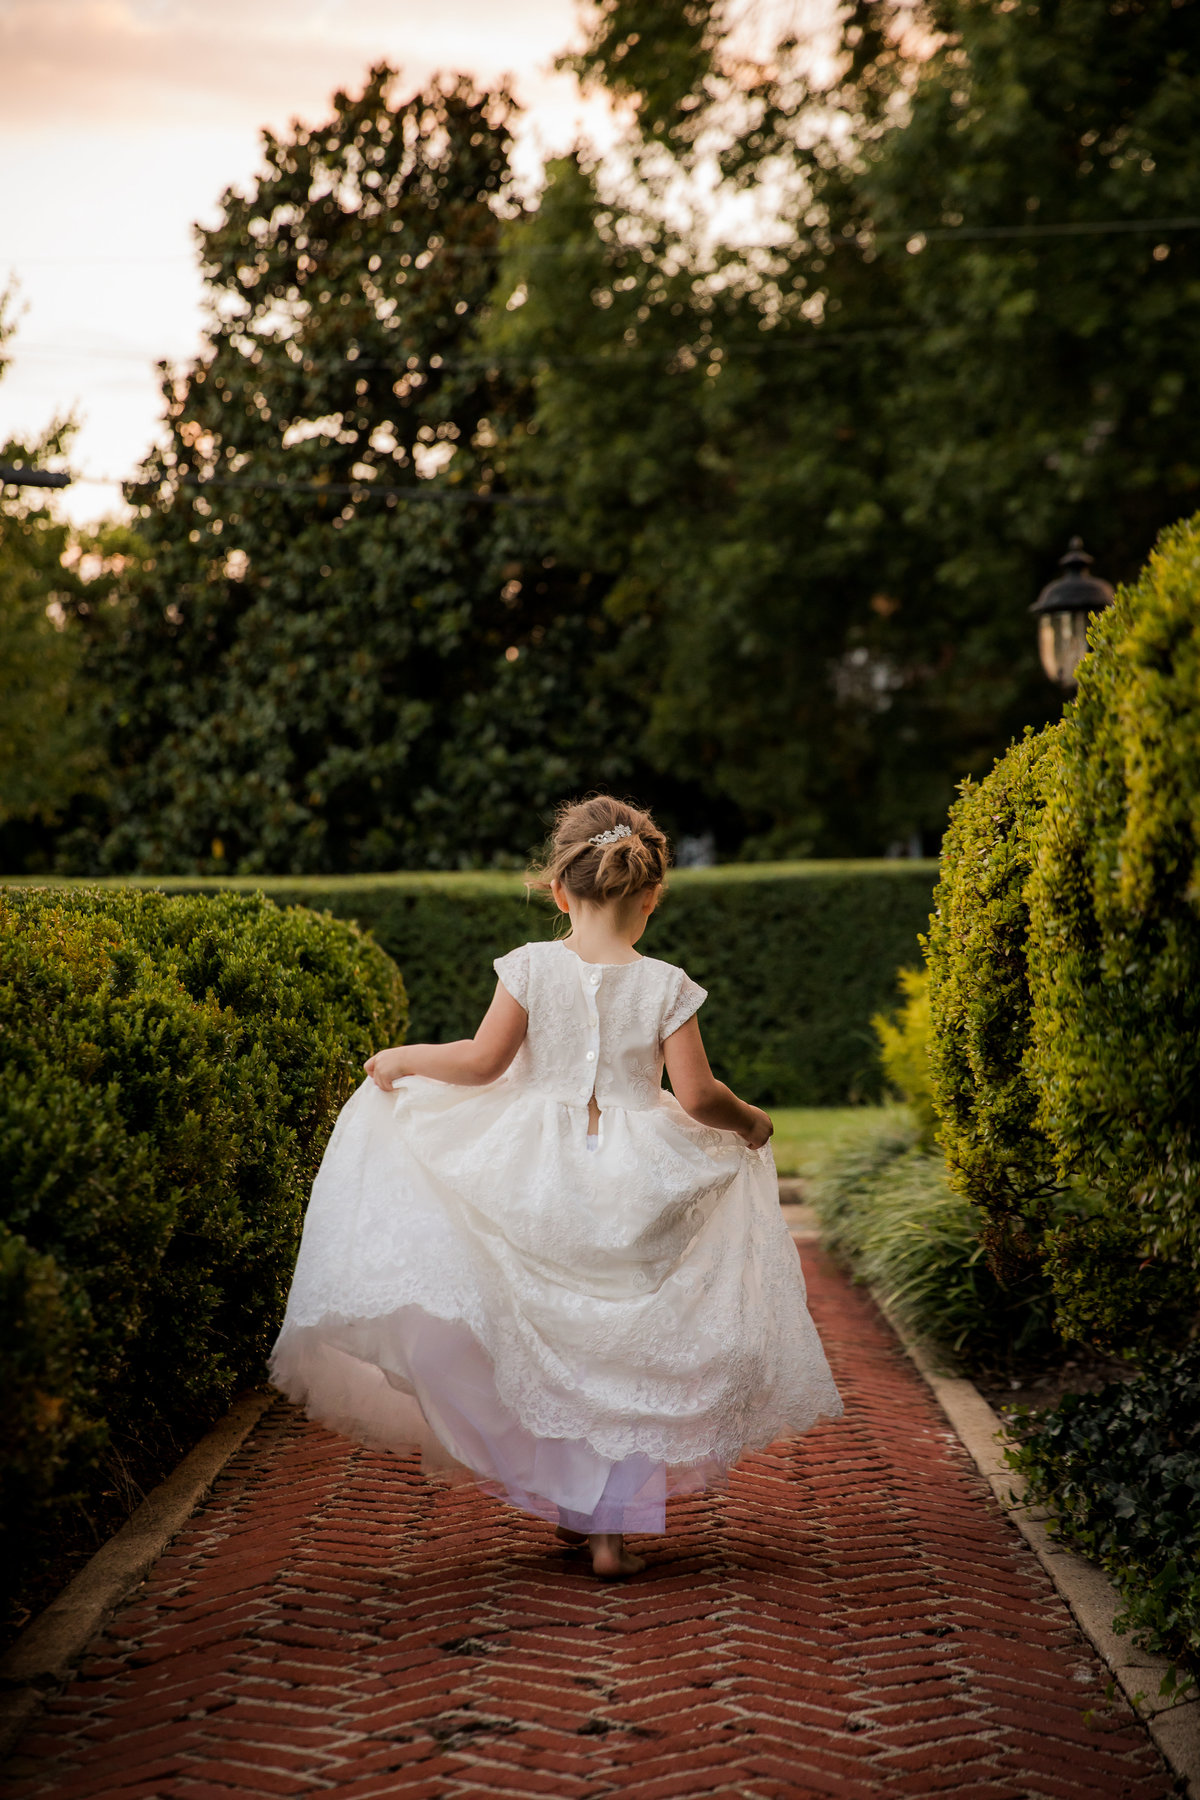 Virginia Bride - Virginia Weddings - Virginia Wedding Photographer - Virginia Wedding Photographers - Soutehrn Bride - Church Wedding - Catholic Wedding - Classic Bride - Nashville Wedding Photographer - Nashville Wedding Photographers006